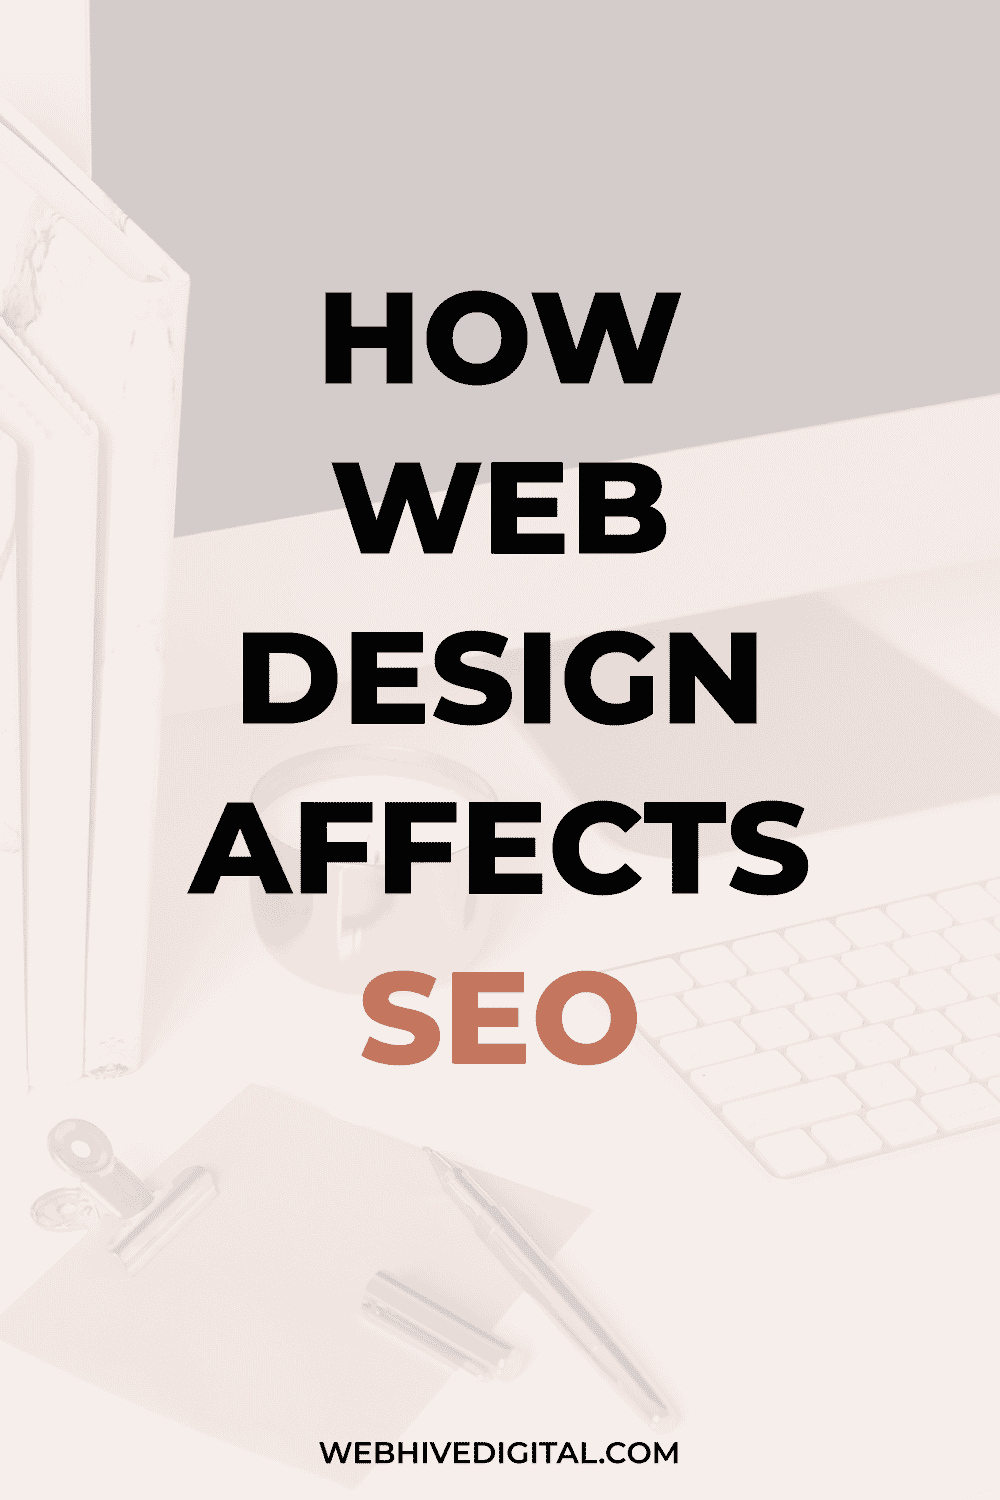 How Web Design Affects SEO | Webhive Digital